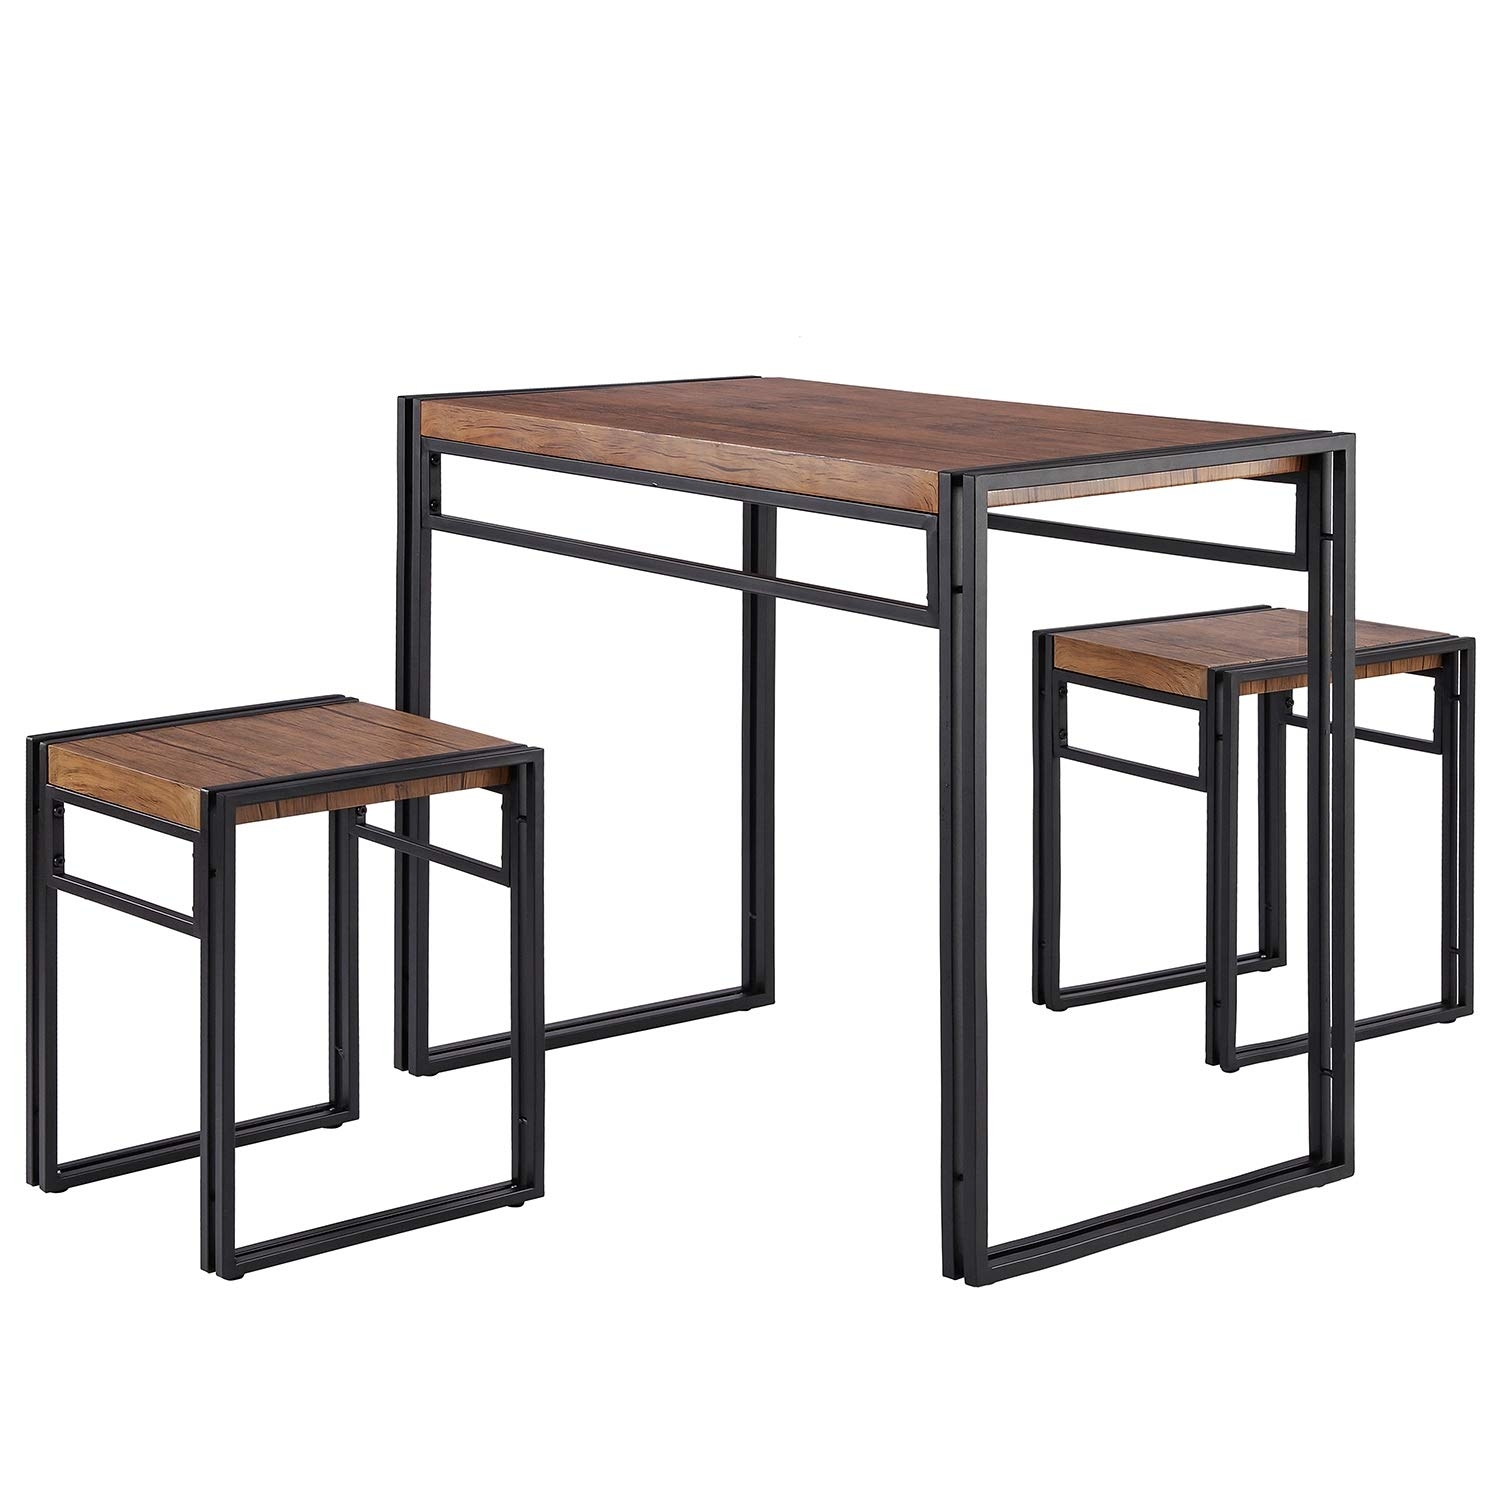 FIVEGIVEN 3 Piece Dining Table Set for Small Spaces Kitchen Table Set for 2 Rustic Industrial Brown by FIVEGIVEN